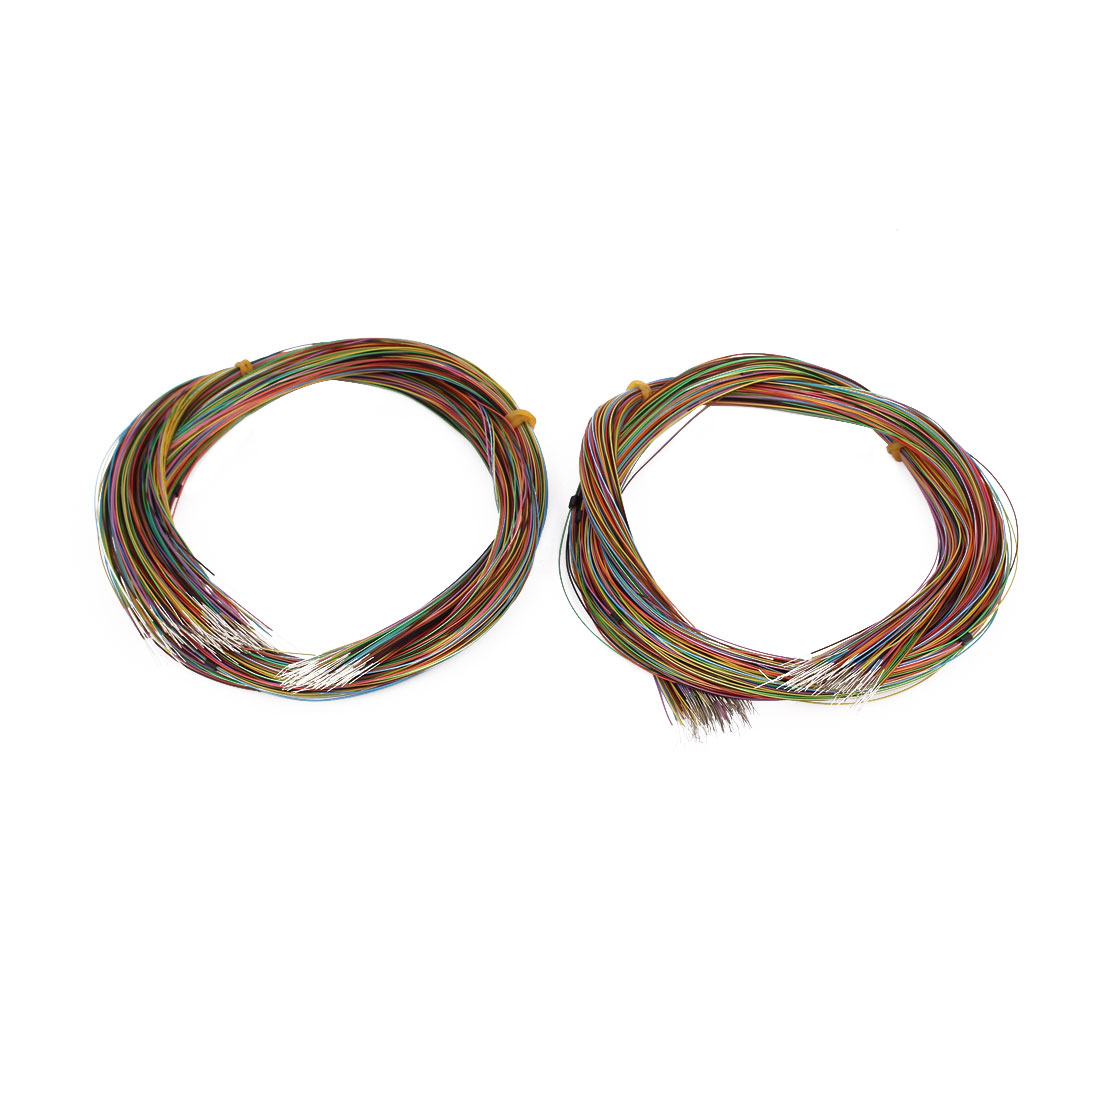 High Temperature Resistant Wrapping Wire 655mm x 0.4mm Multicolor 400 Pcs